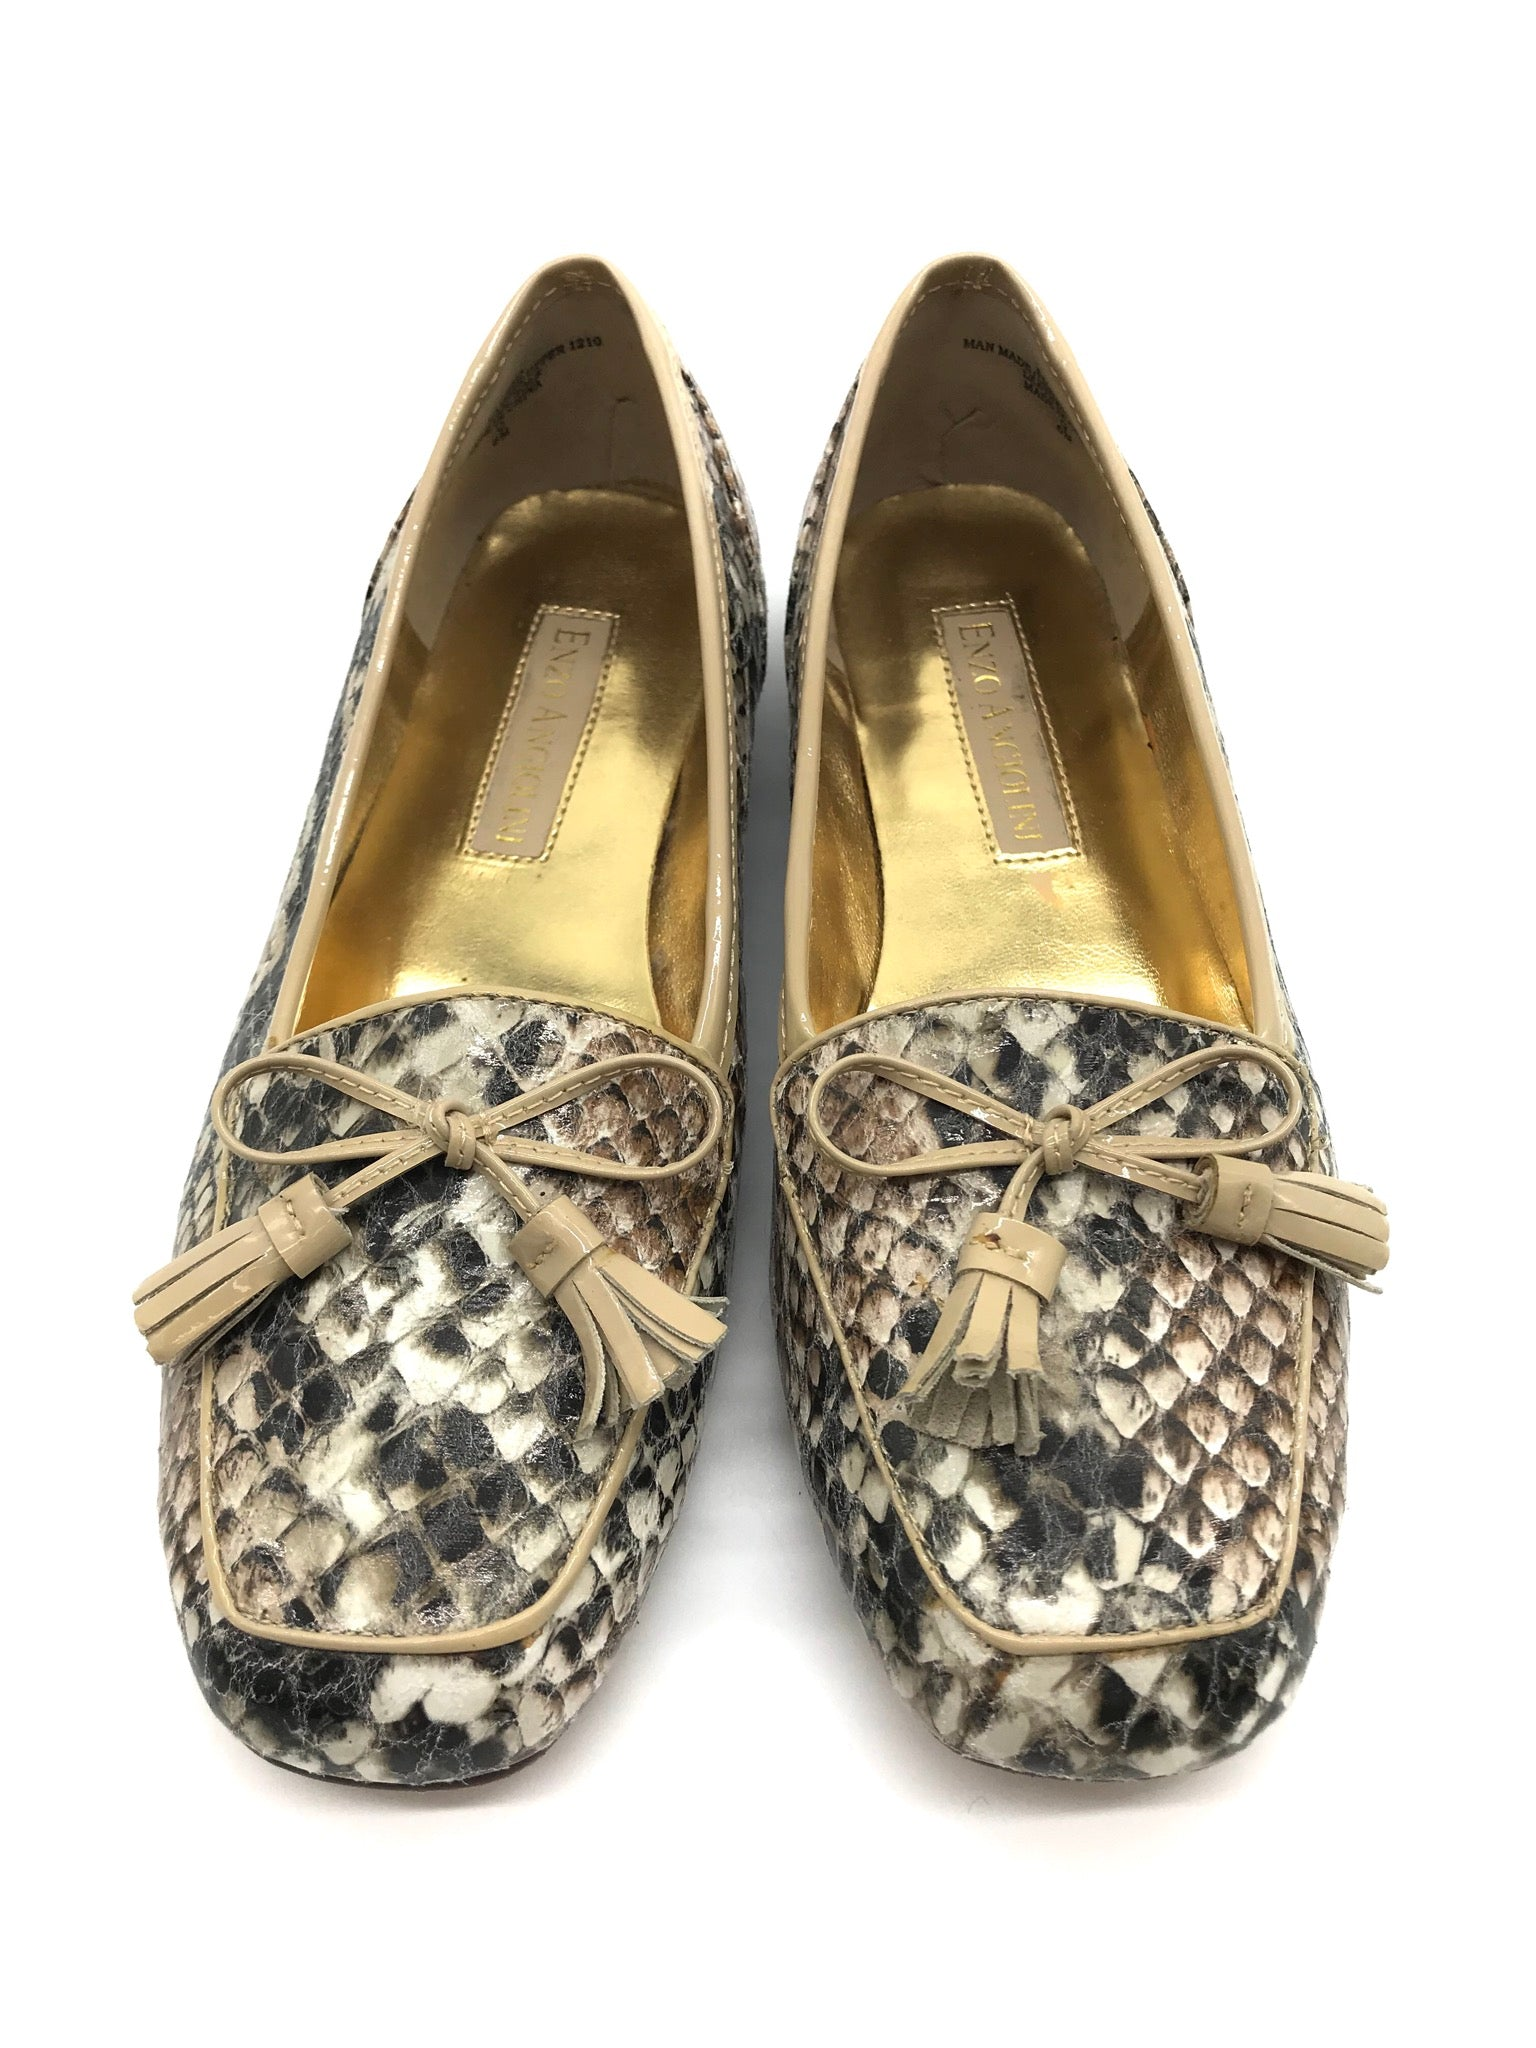 Primary Photo - BRAND: ENZO ANGIOLINI <BR>STYLE: SHOES FLATS <BR>COLOR: SNAKESKIN PRINT <BR>SIZE: 6 <BR>SKU: 262-26275-64519<BR>IN GOOD CONDITION - AS IS